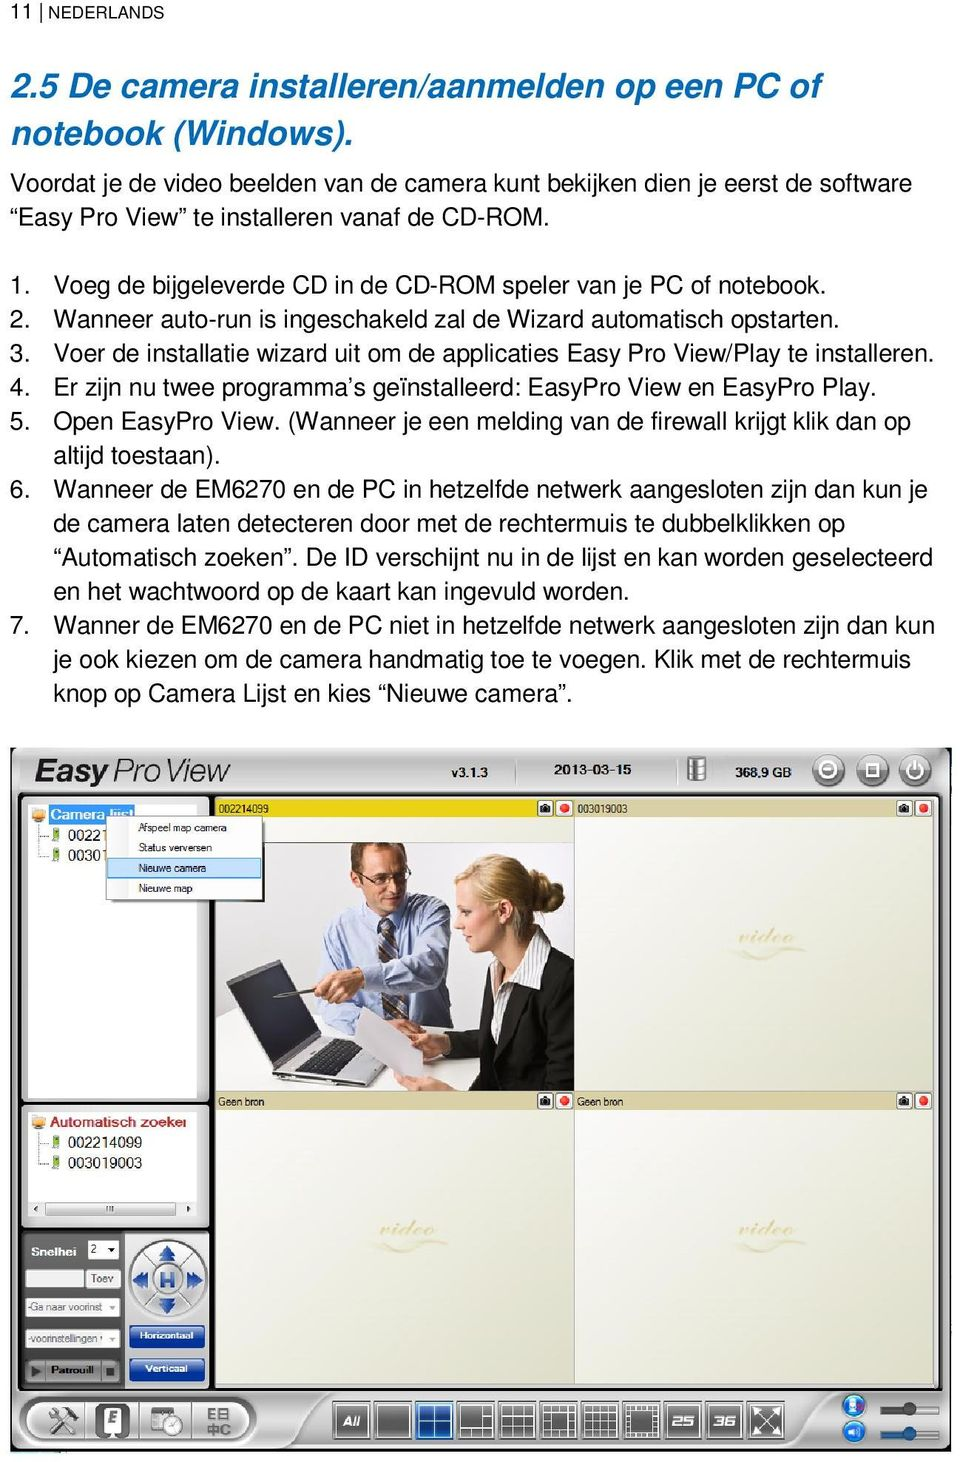 Wanneer auto-run is ingeschakeld zal de Wizard automatisch opstarten. 3. Voer de installatie wizard uit om de applicaties Easy Pro View/Play te installeren. 4.